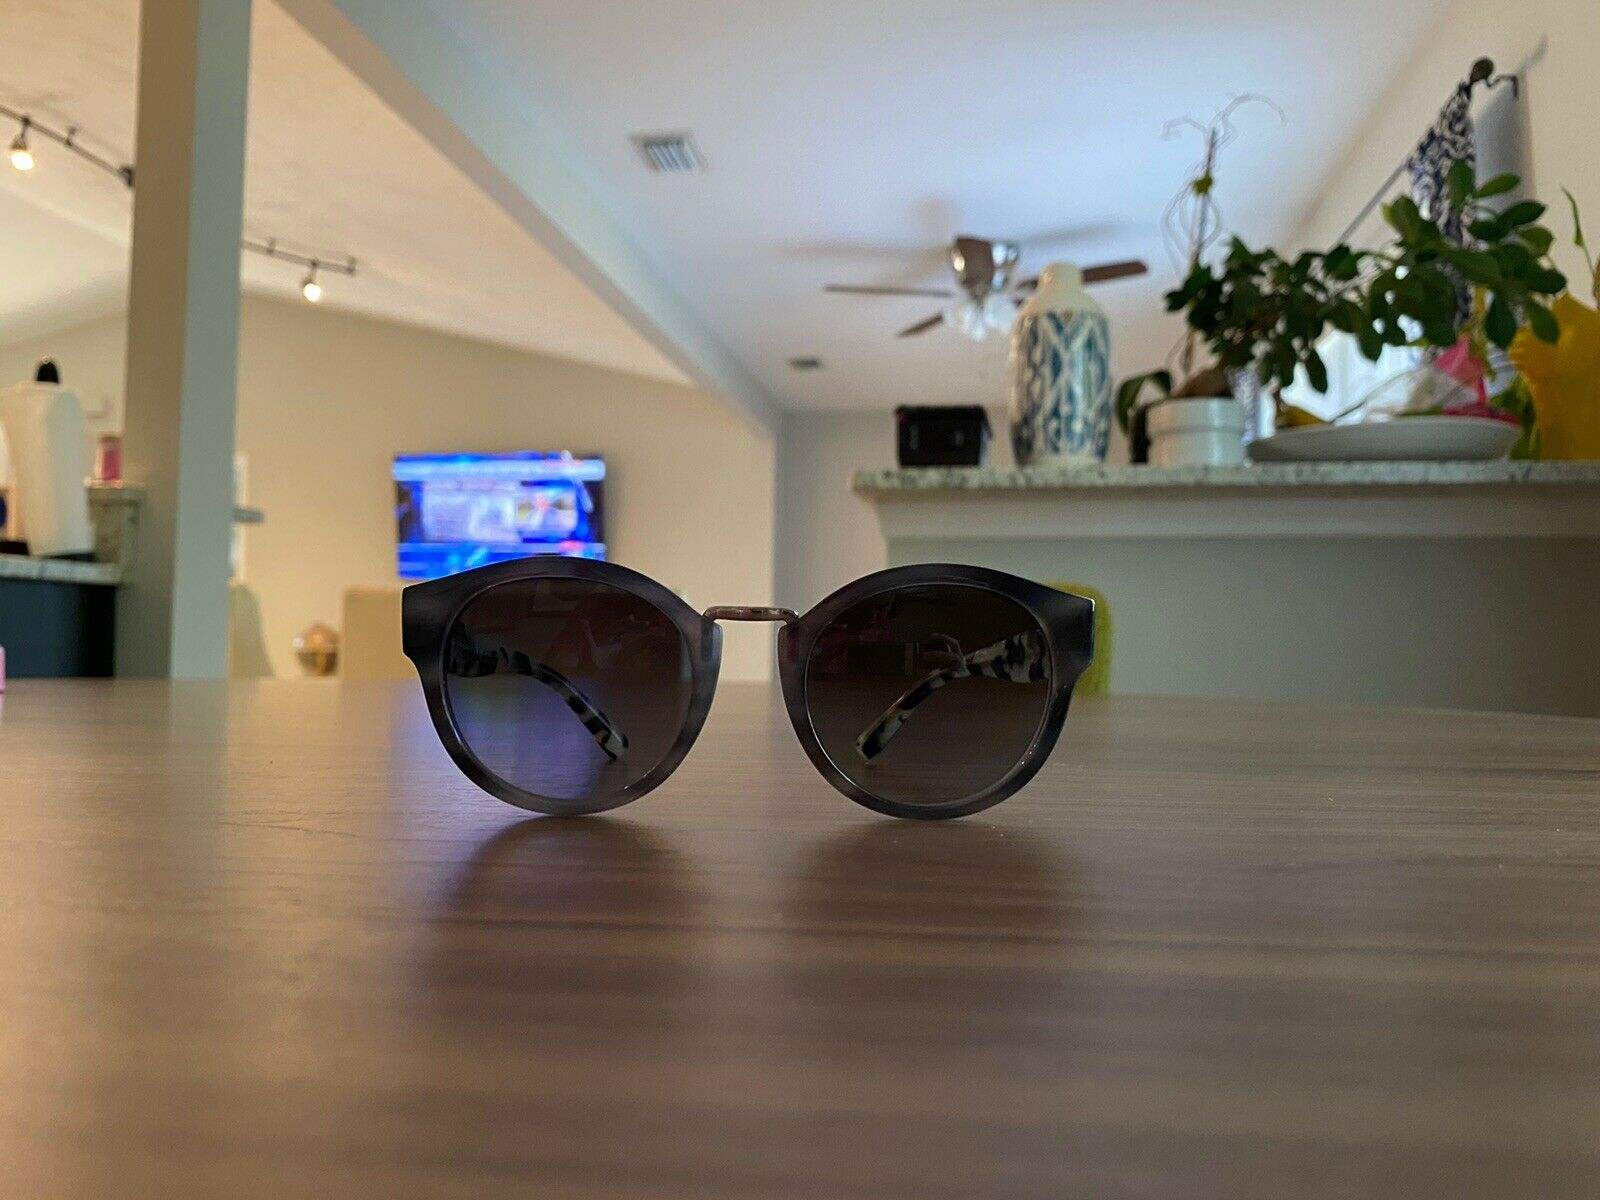 100% Authentic Burberry brand new sunglases